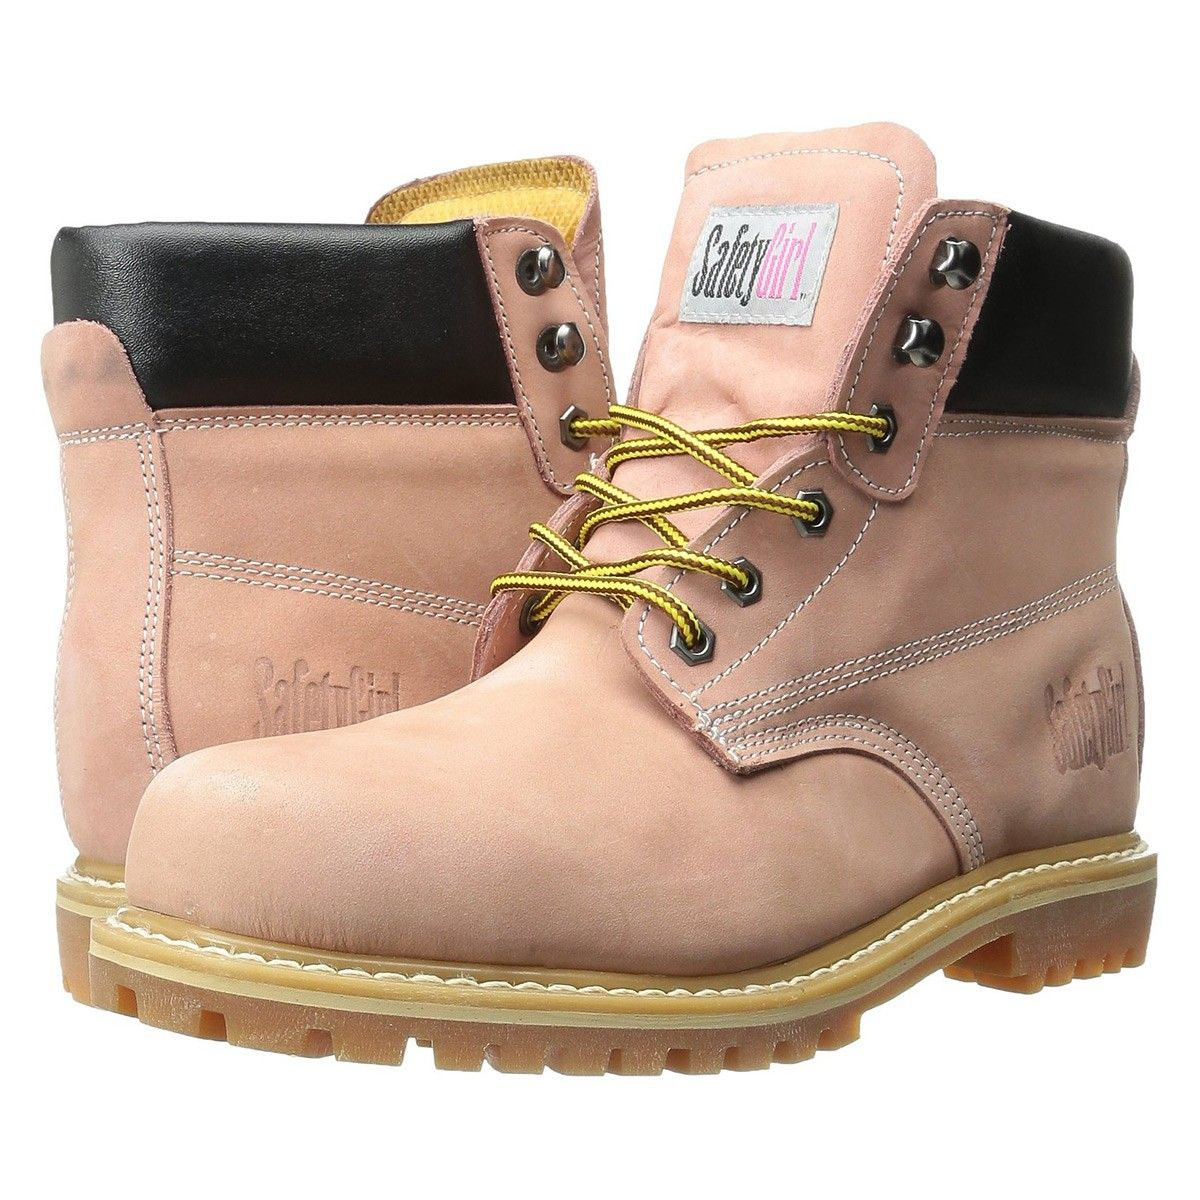 60 Safety Girl Steel Toe Waterproof Womens Work Boots - Light Pink 673b0e827e